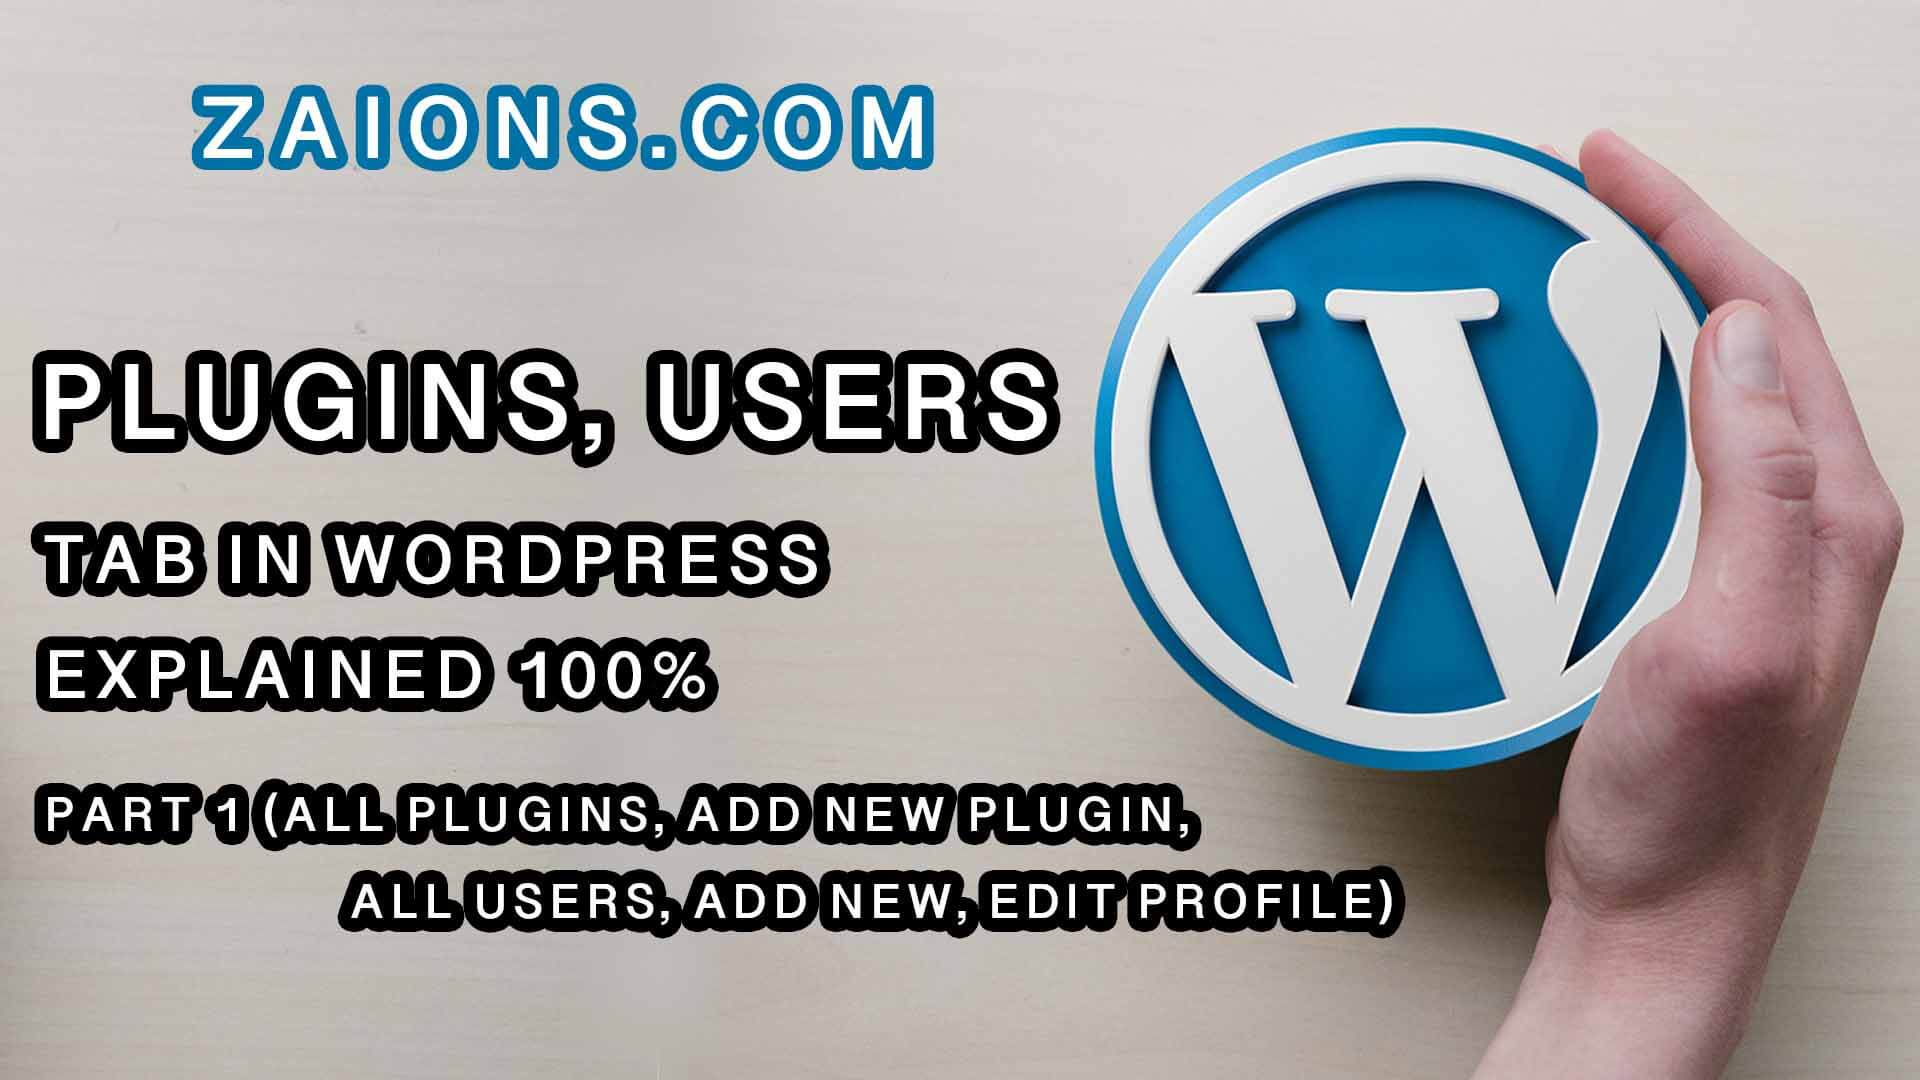 w-Plugins, Users Explained For Beginners